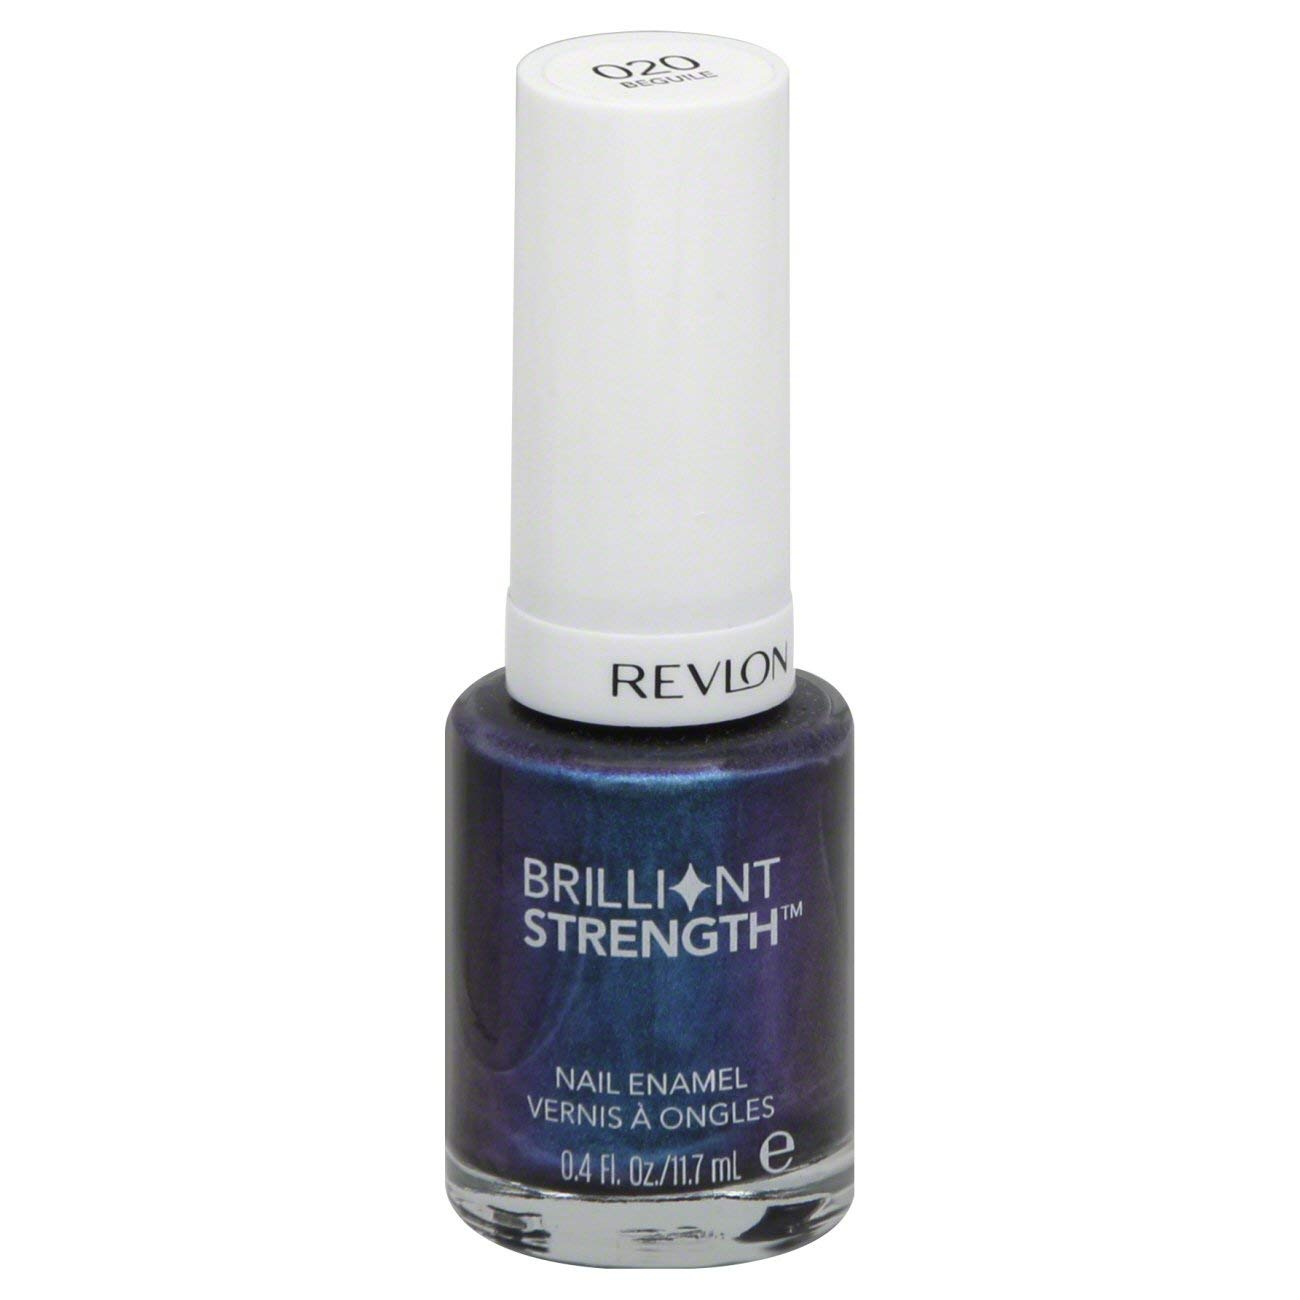 NEW Revlon Brilliant Strength Nail Enamel 020 Beguile